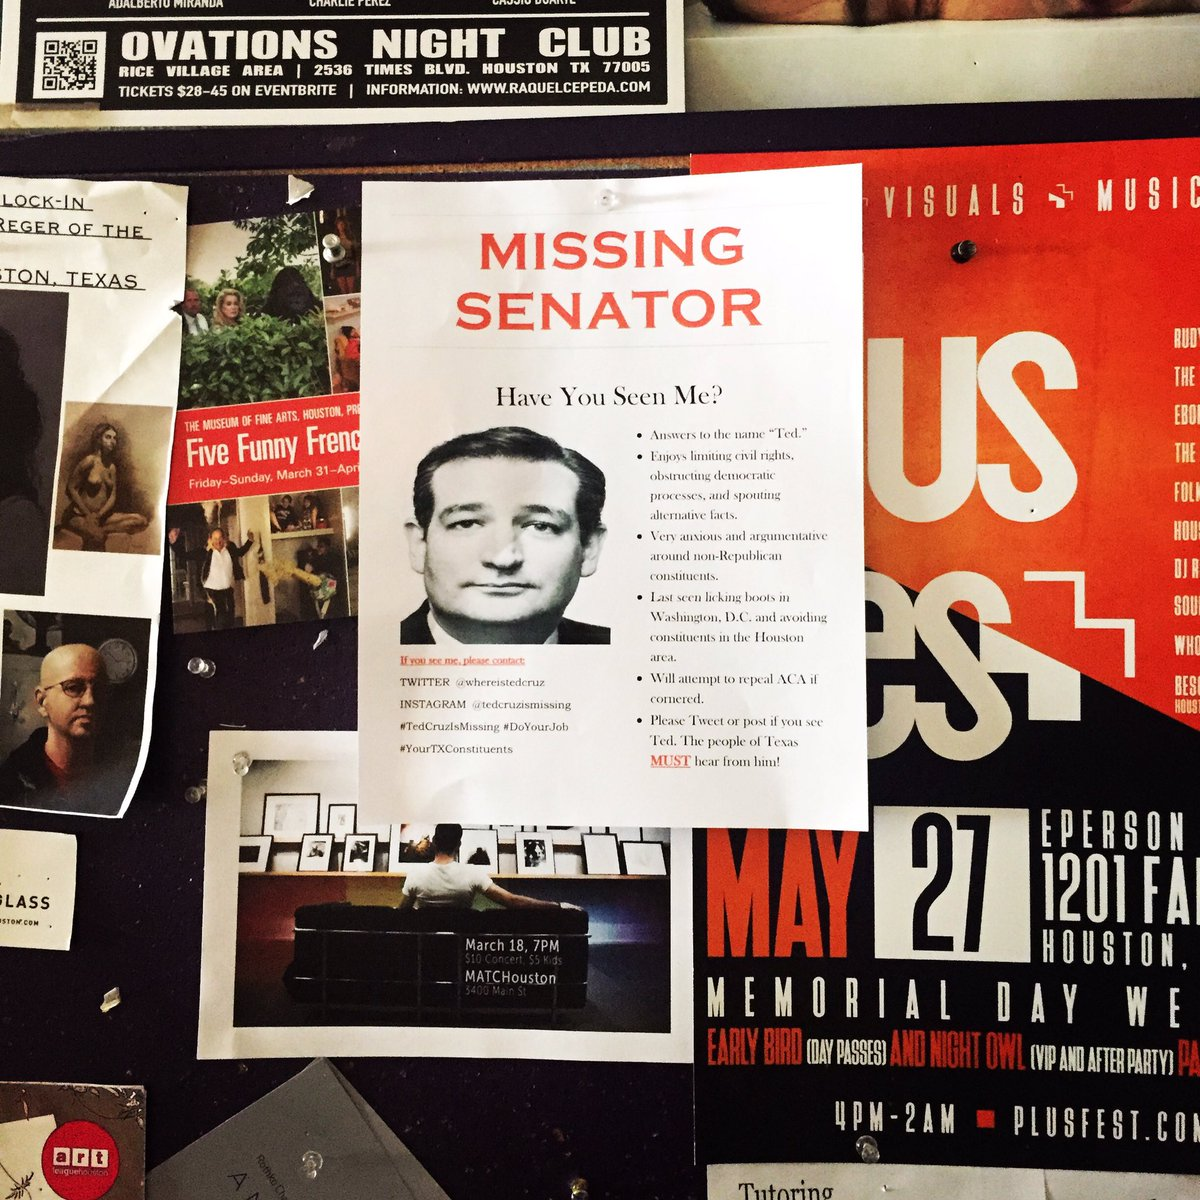 ted cruz is missing on twitter flyer spotted antidotecoffee but